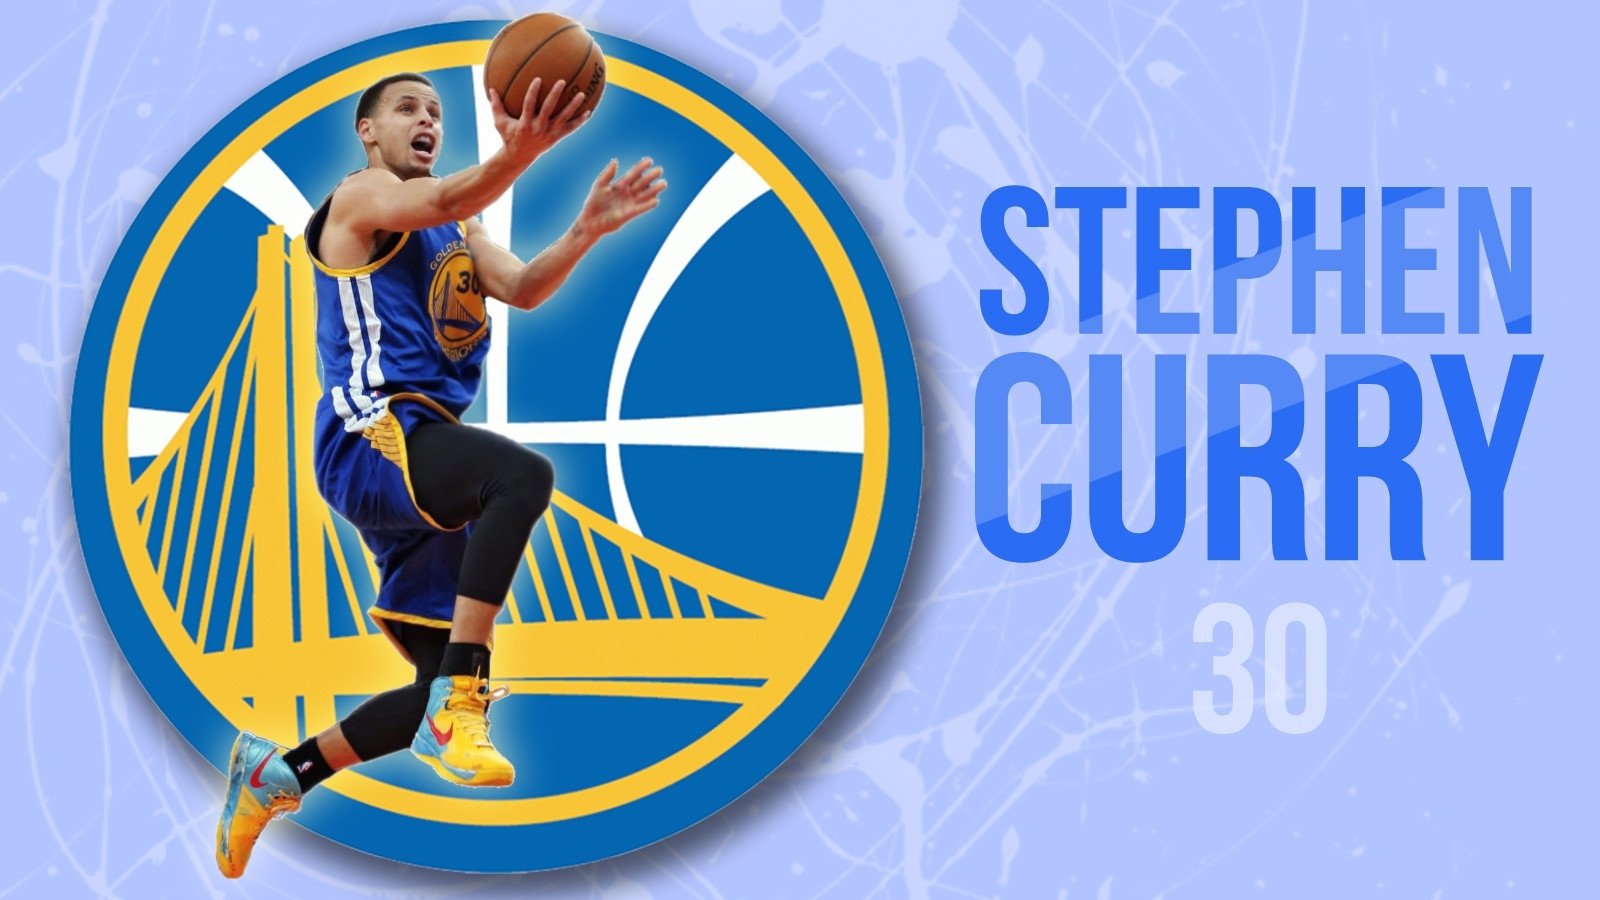 10 Best Stephen Curry Wallpaper Shooting FULL HD 1080p For PC Desktop